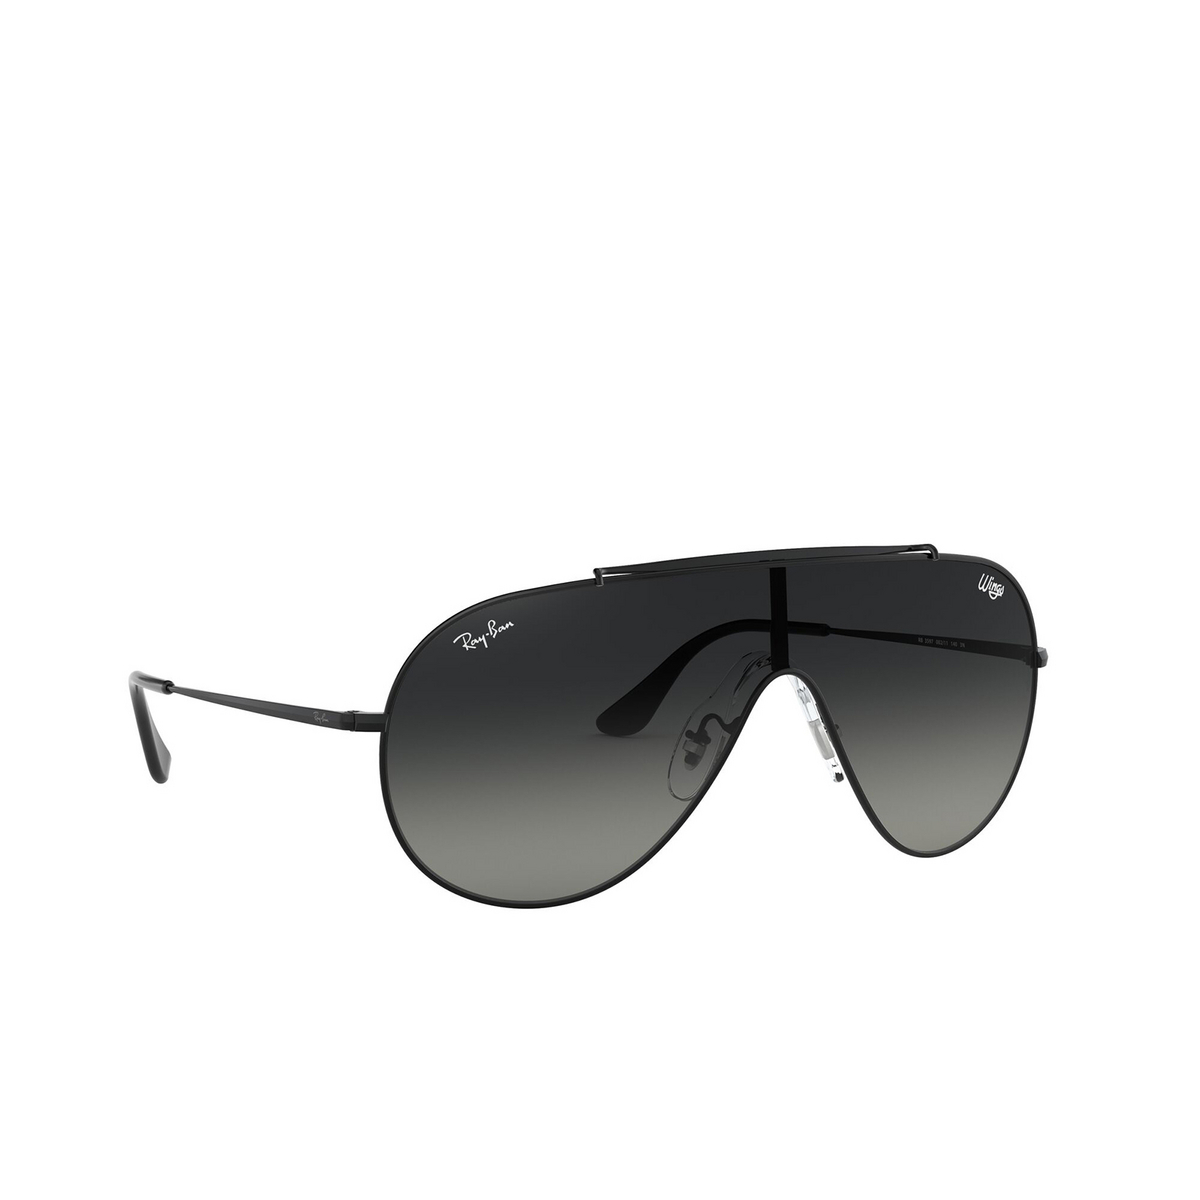 Ray-Ban® Aviator Sunglasses: Wings RB3597 color Black 002/11 - three-quarters view.